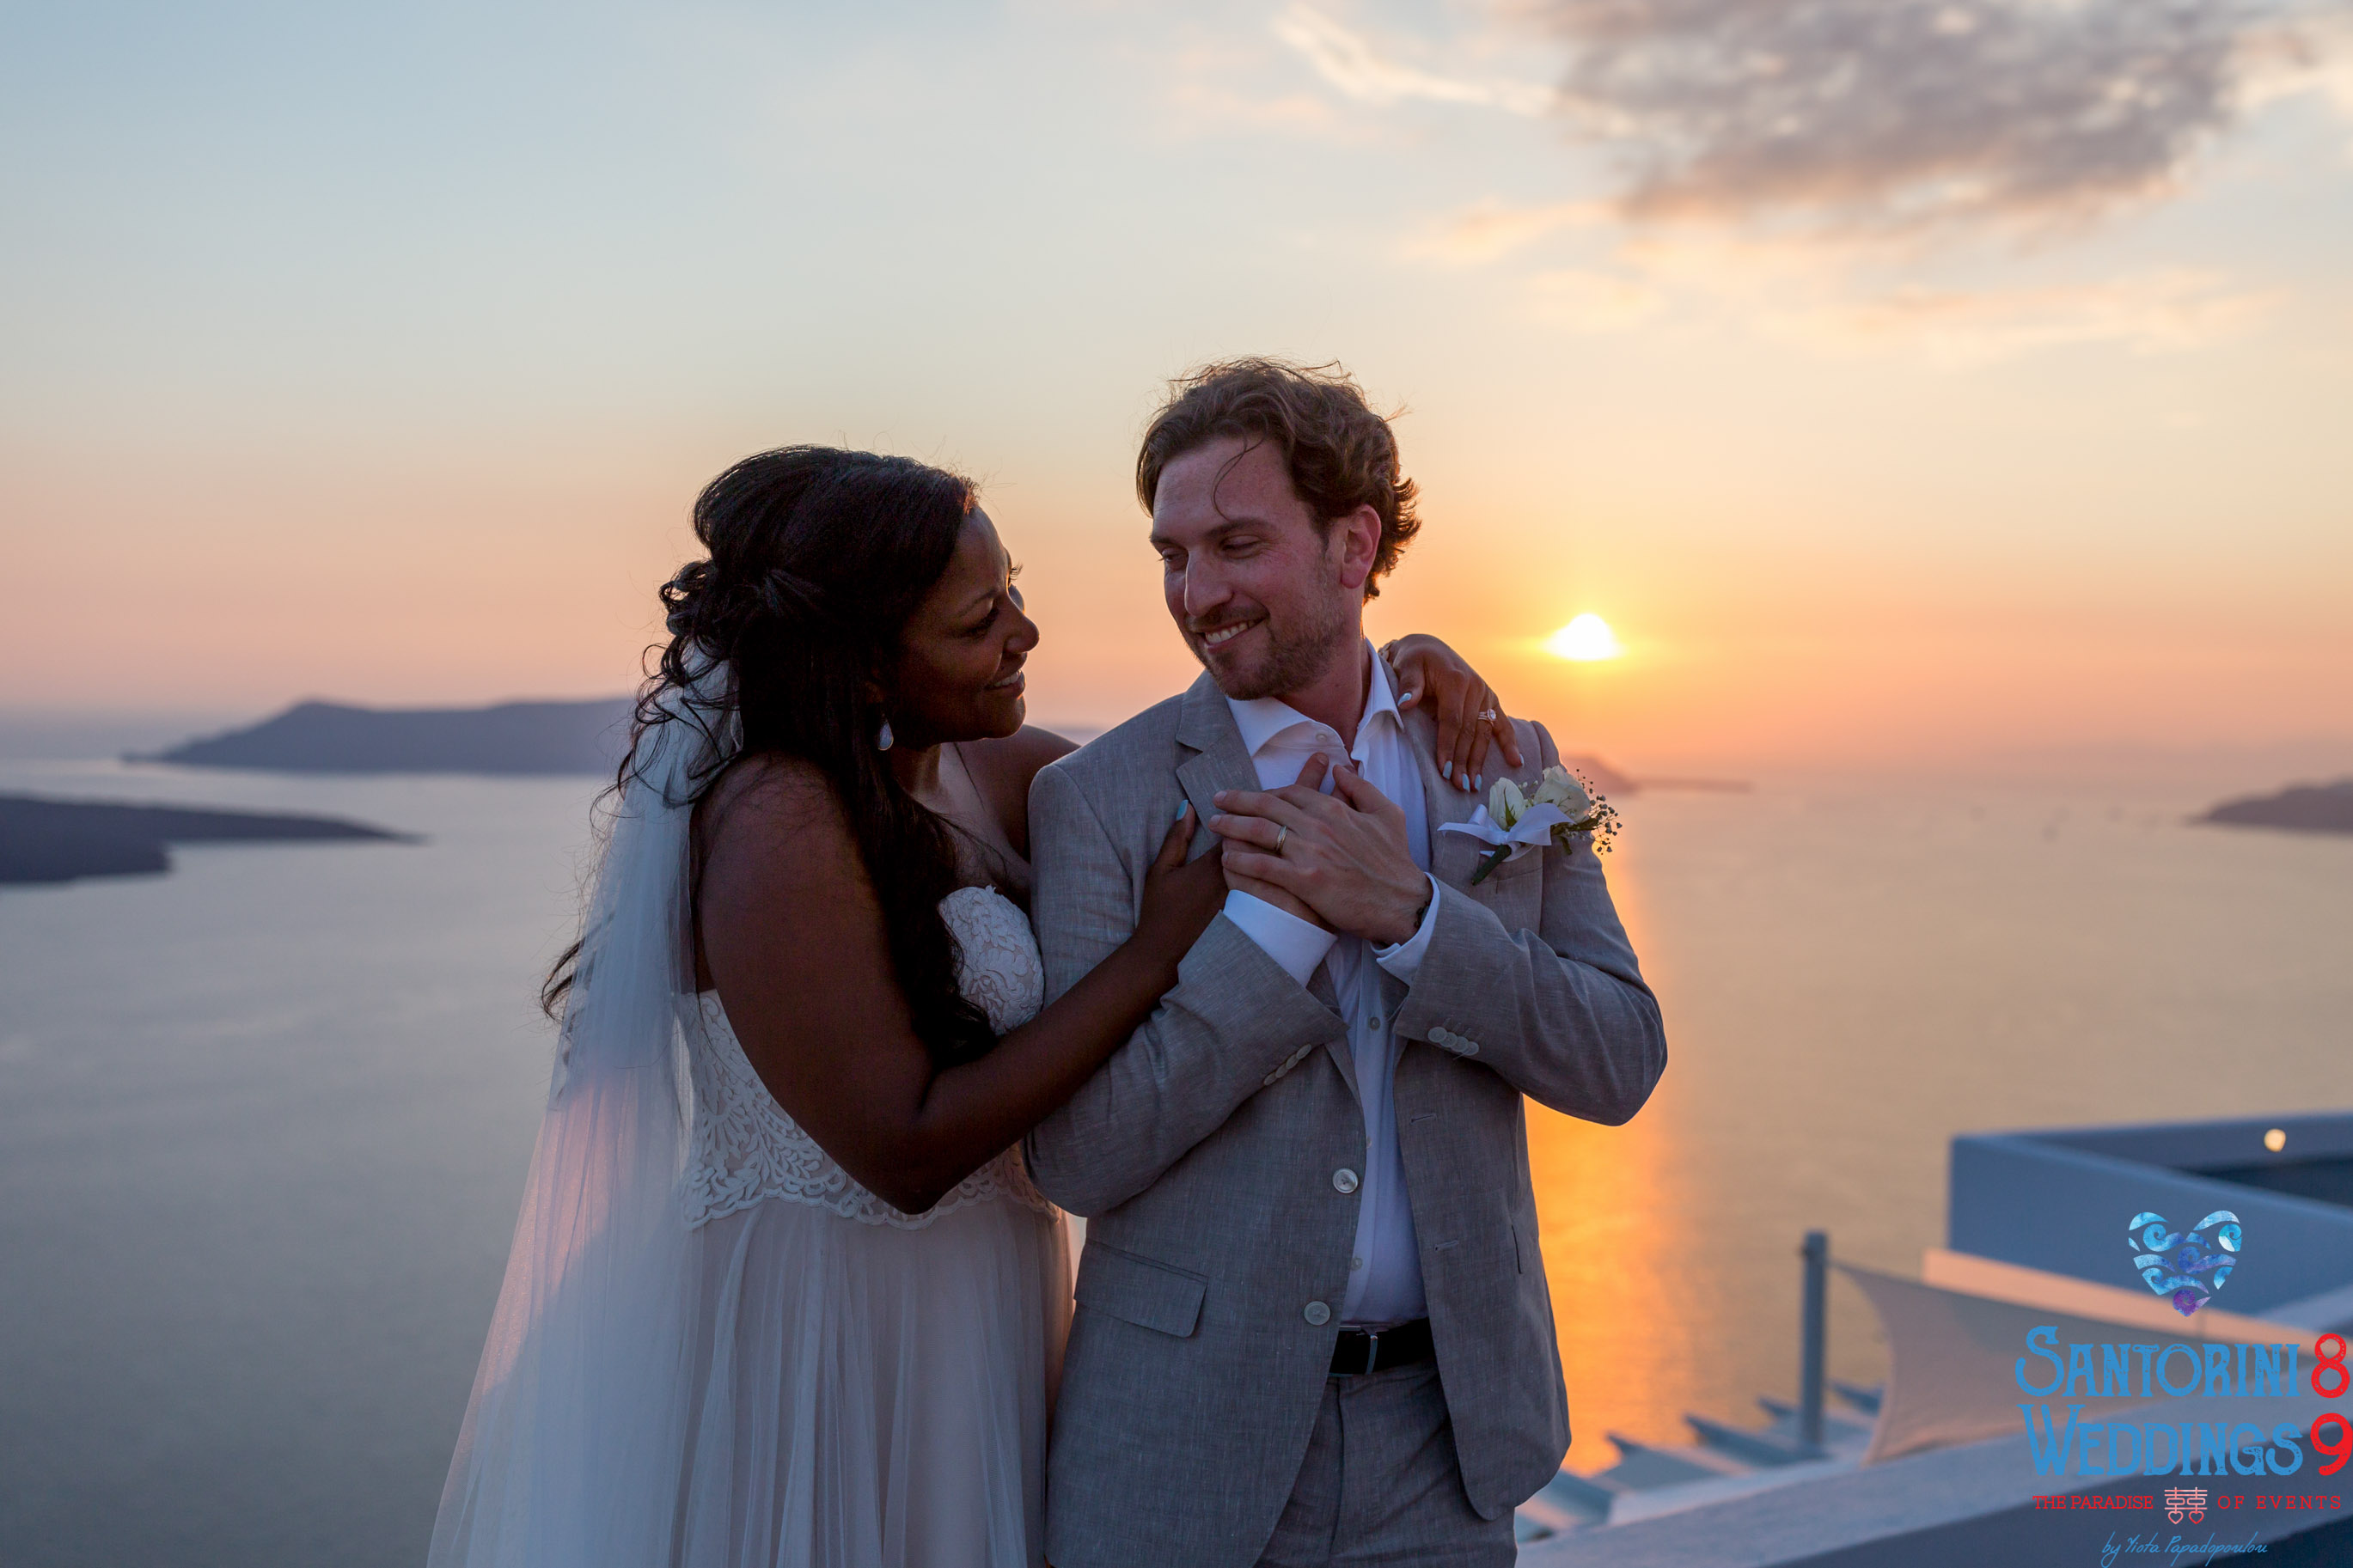 jason-lisa---unique-wedding-pictures-by-santorini8-weddings9-dragons-group-18.jpg